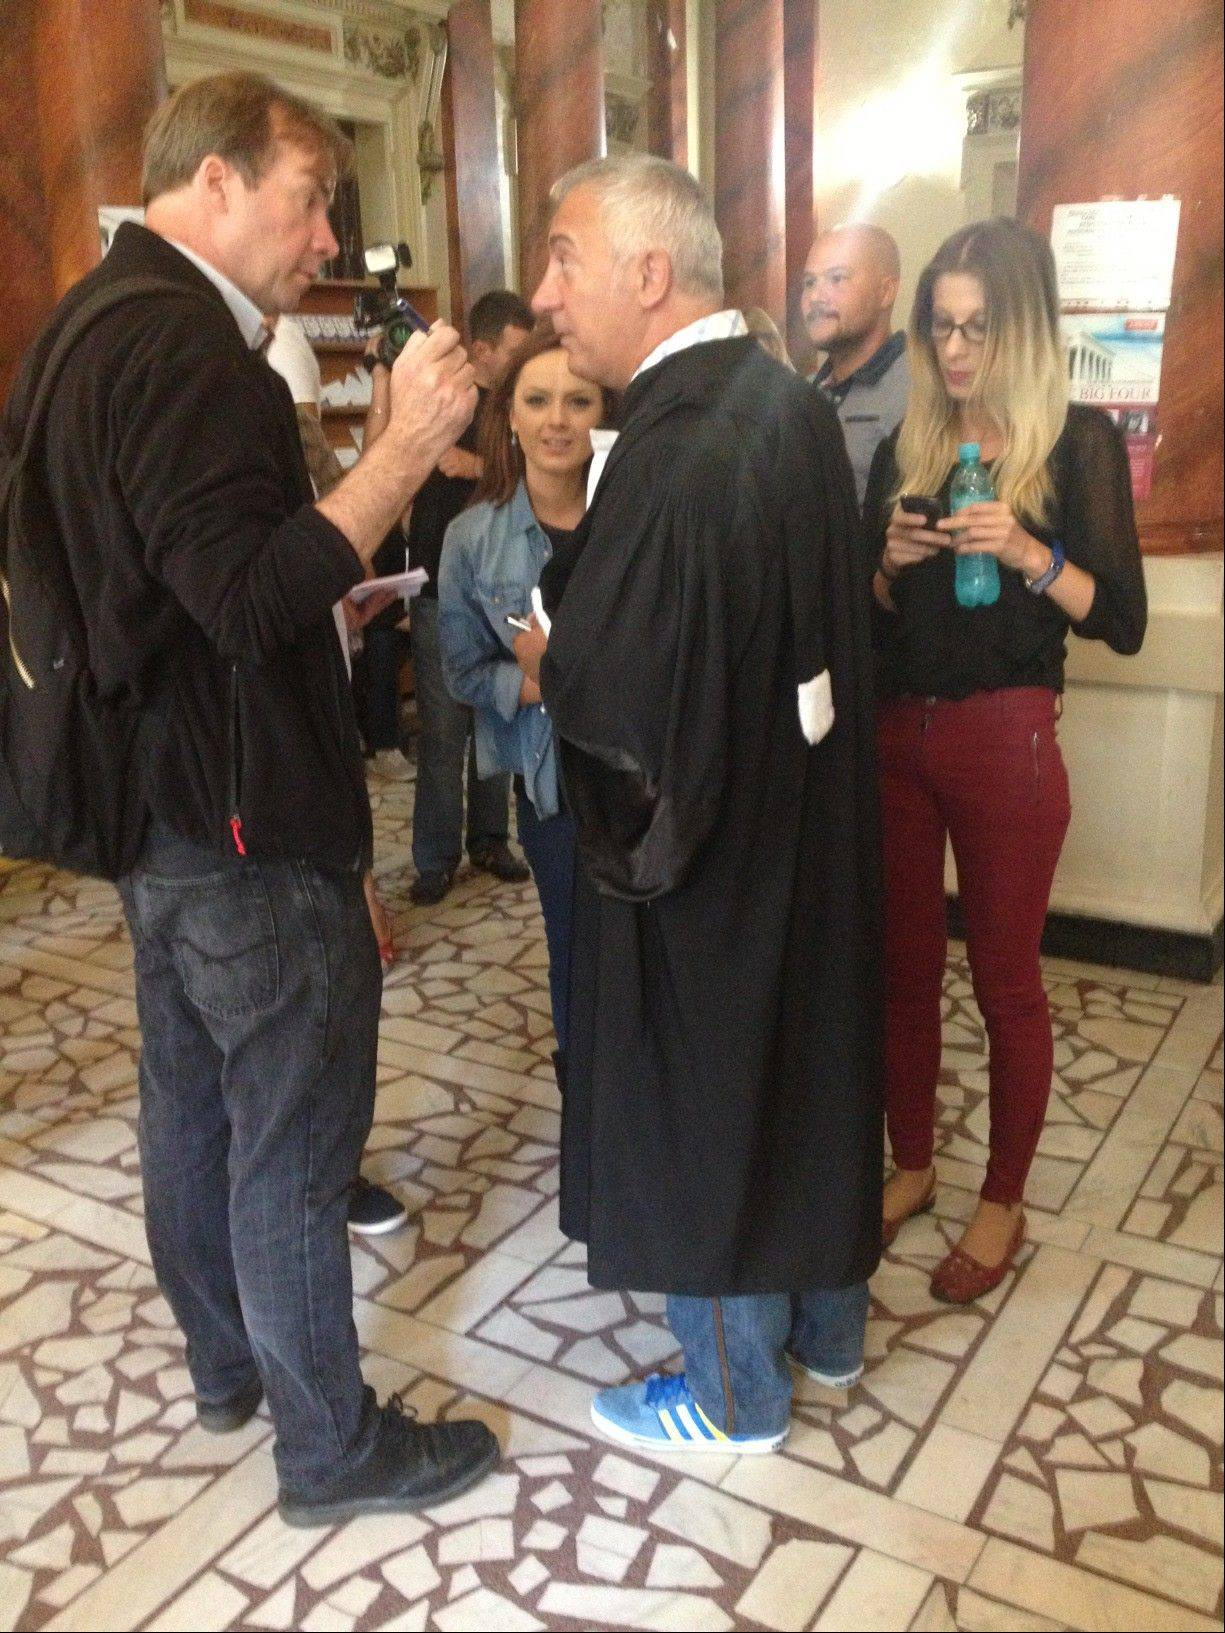 Media surround lawyer Catalin Dancu who stands in a court in Bucharest wearing his sneakers Tuesday Sept 10 2013. A judge fined Dancu 5,000 lei ($1482 ) Tuesday for flouting dress regulations and for arriving late at the trial of four Romanians who are being tried over the theft of seven pa